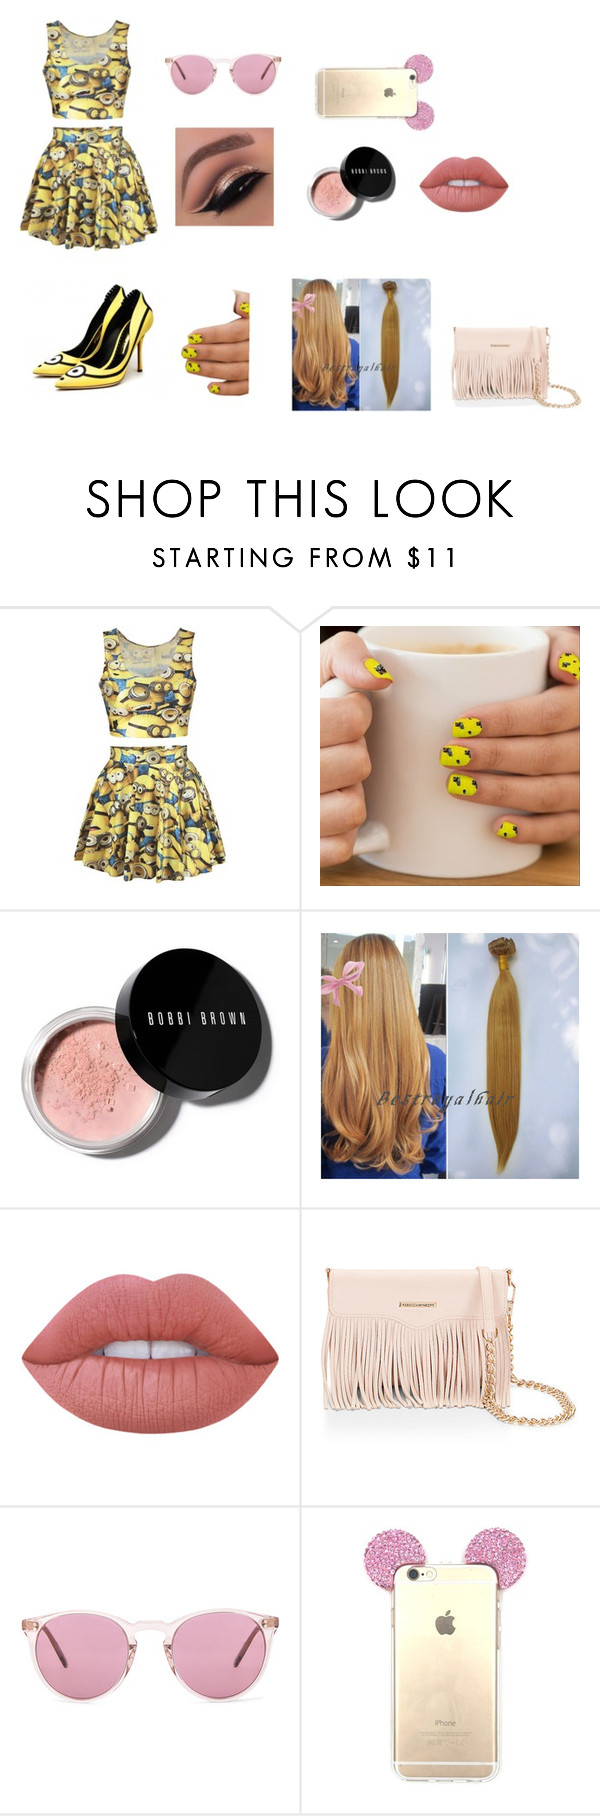 """""""minion style"""" by sarah4ever123 ❤ liked on Polyvore featuring Bobbi Brown Cosmetics, Lime Crime, Rebecca Minkoff and Oliver Peoples"""